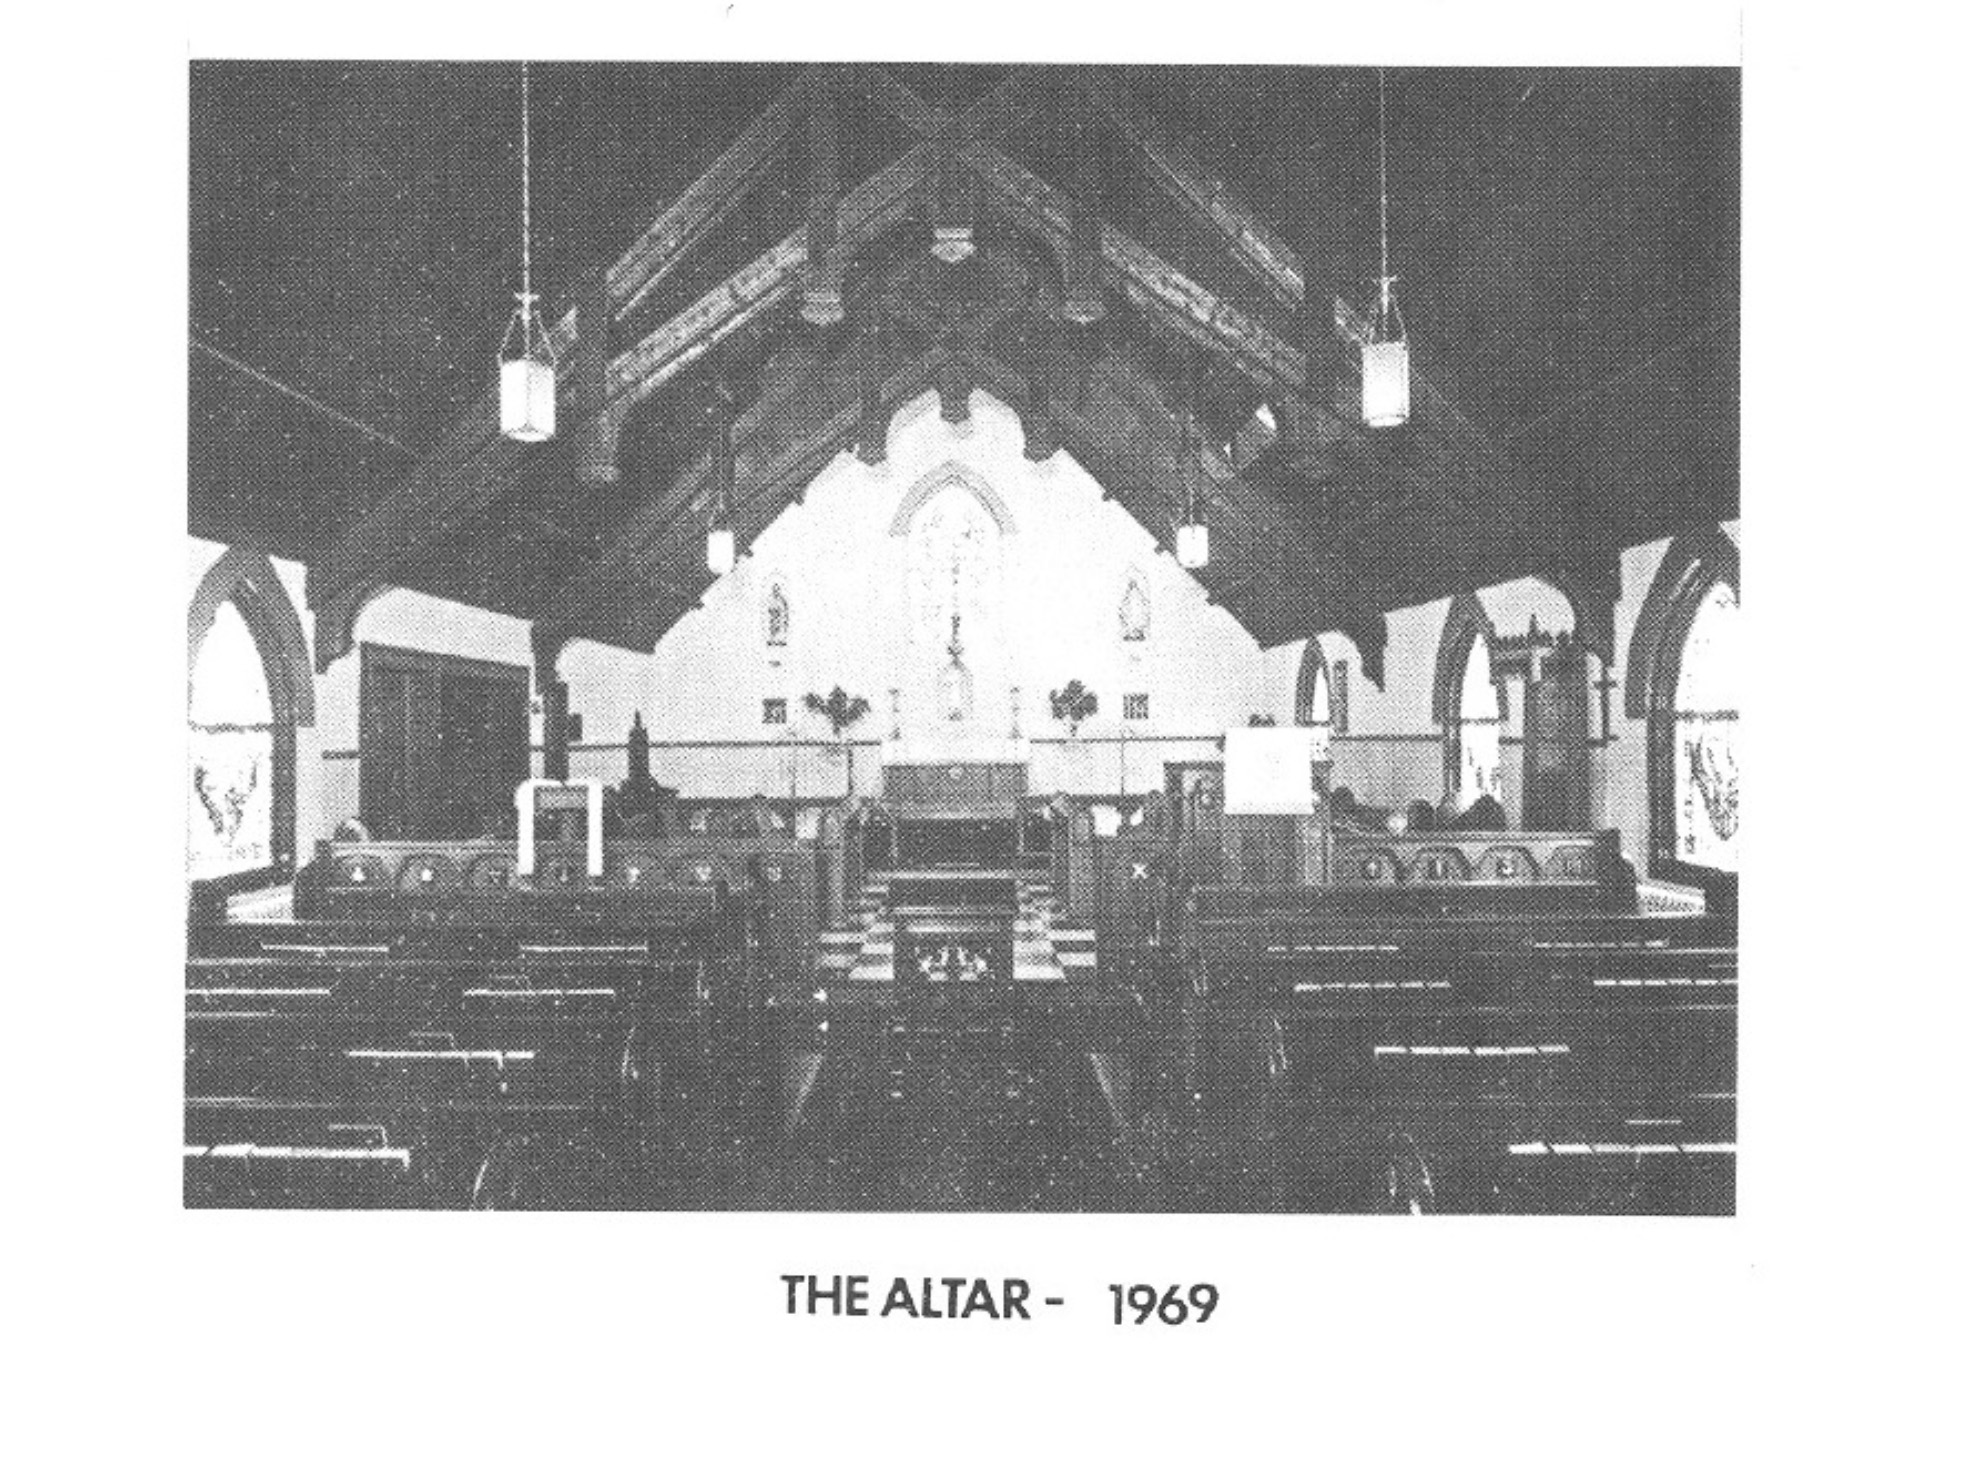 Microsoft Word - The Altar 1969.doc